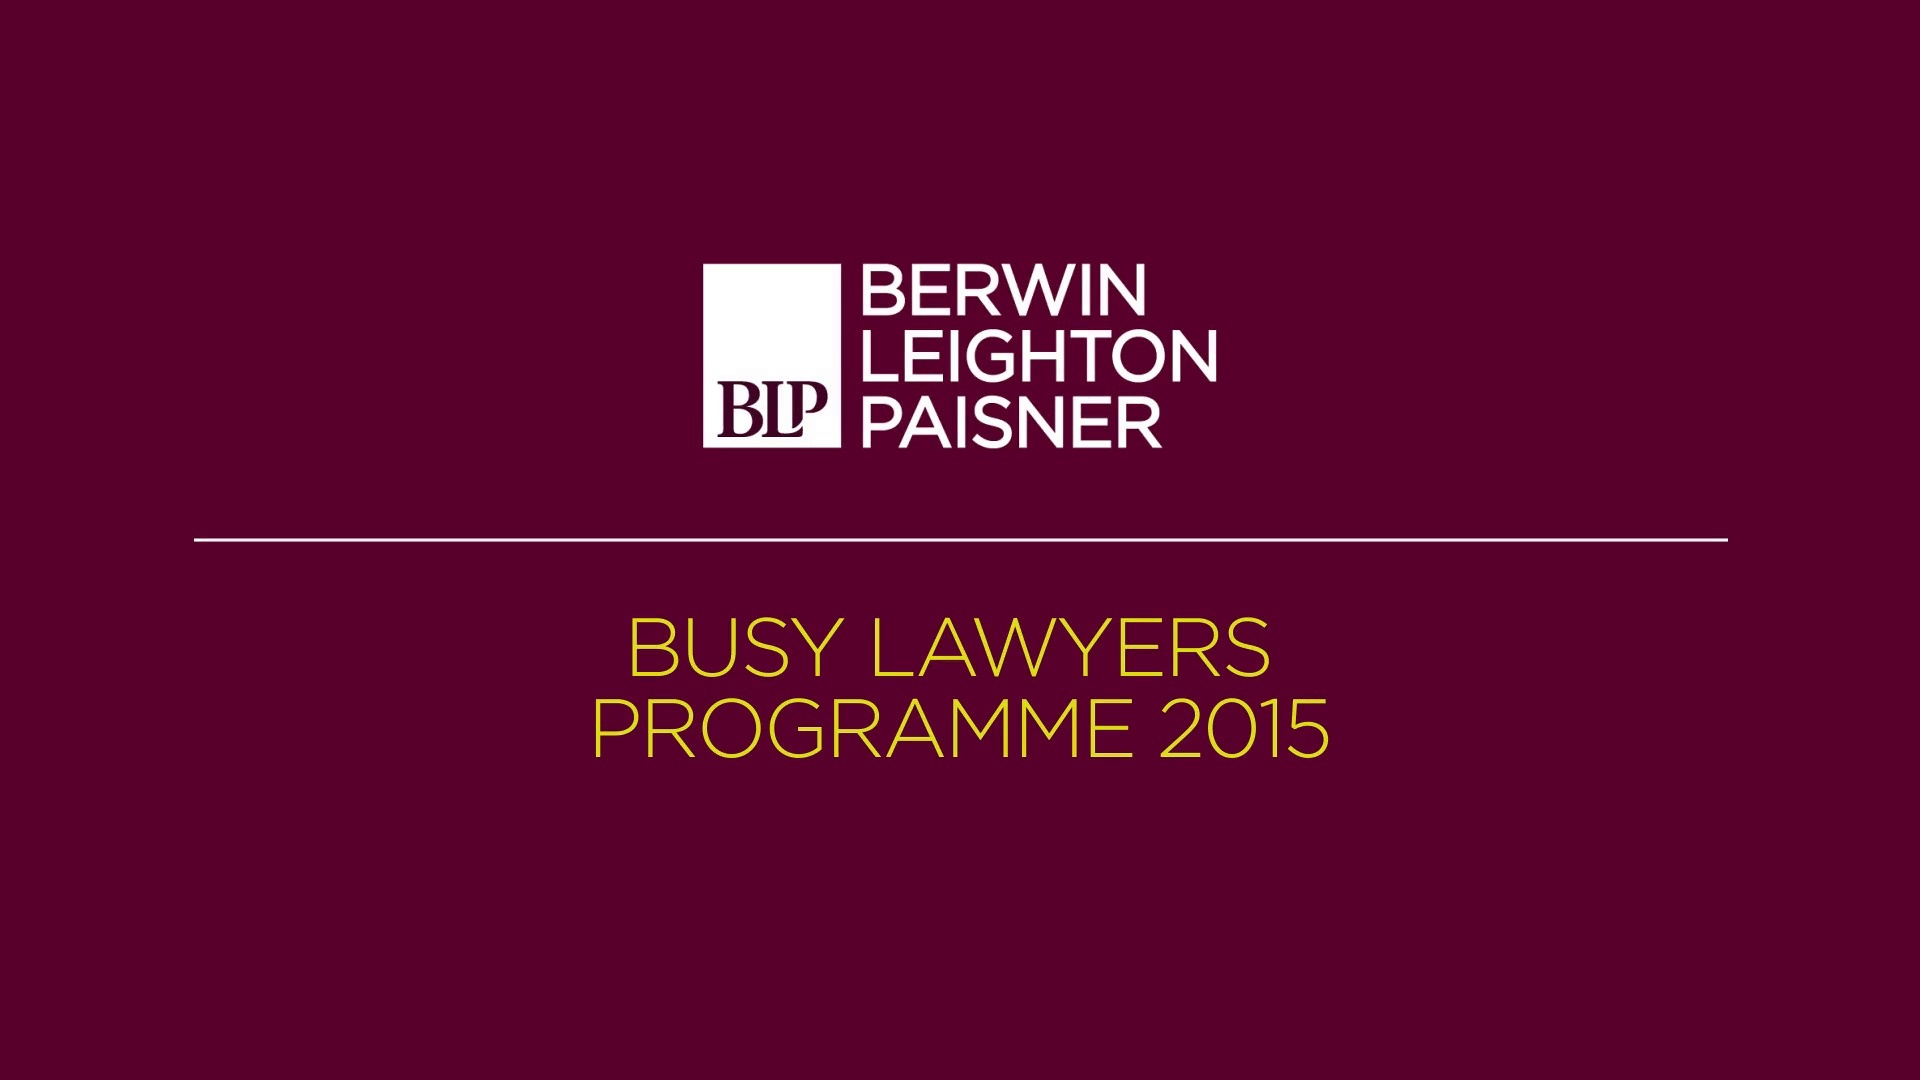 Still image from 'Busy Lawyers Programme 2015' video